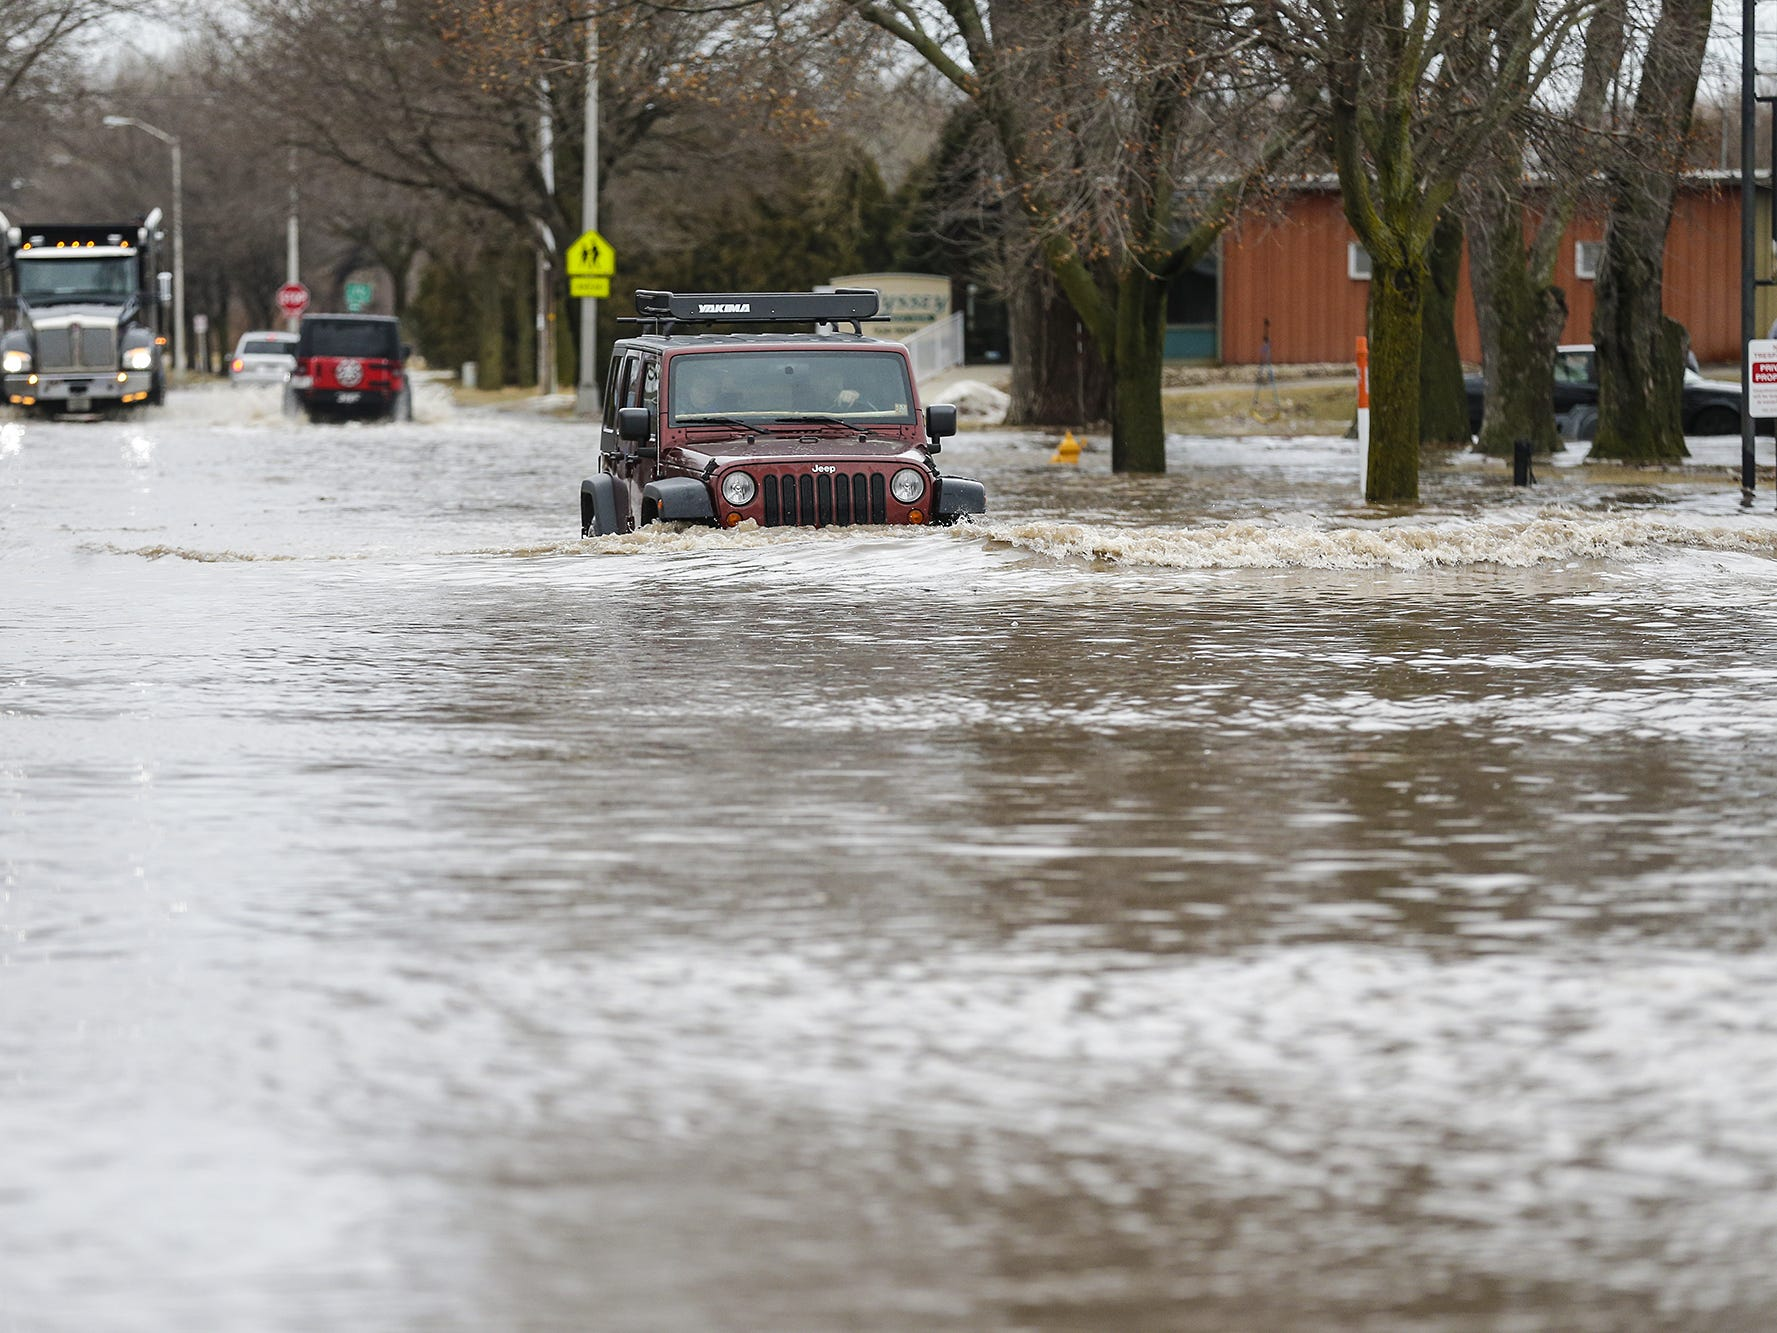 A jeep is driven down a flooded Hickory Street Thursday, March 14, 2019 in Fond du Lac, Wis. Ice jams on the east branch of the Fond du Lac River and heavy rain caused widespread flooding problems in the city. Doug Raflik/USA TODAY NETWORK-Wisconsin